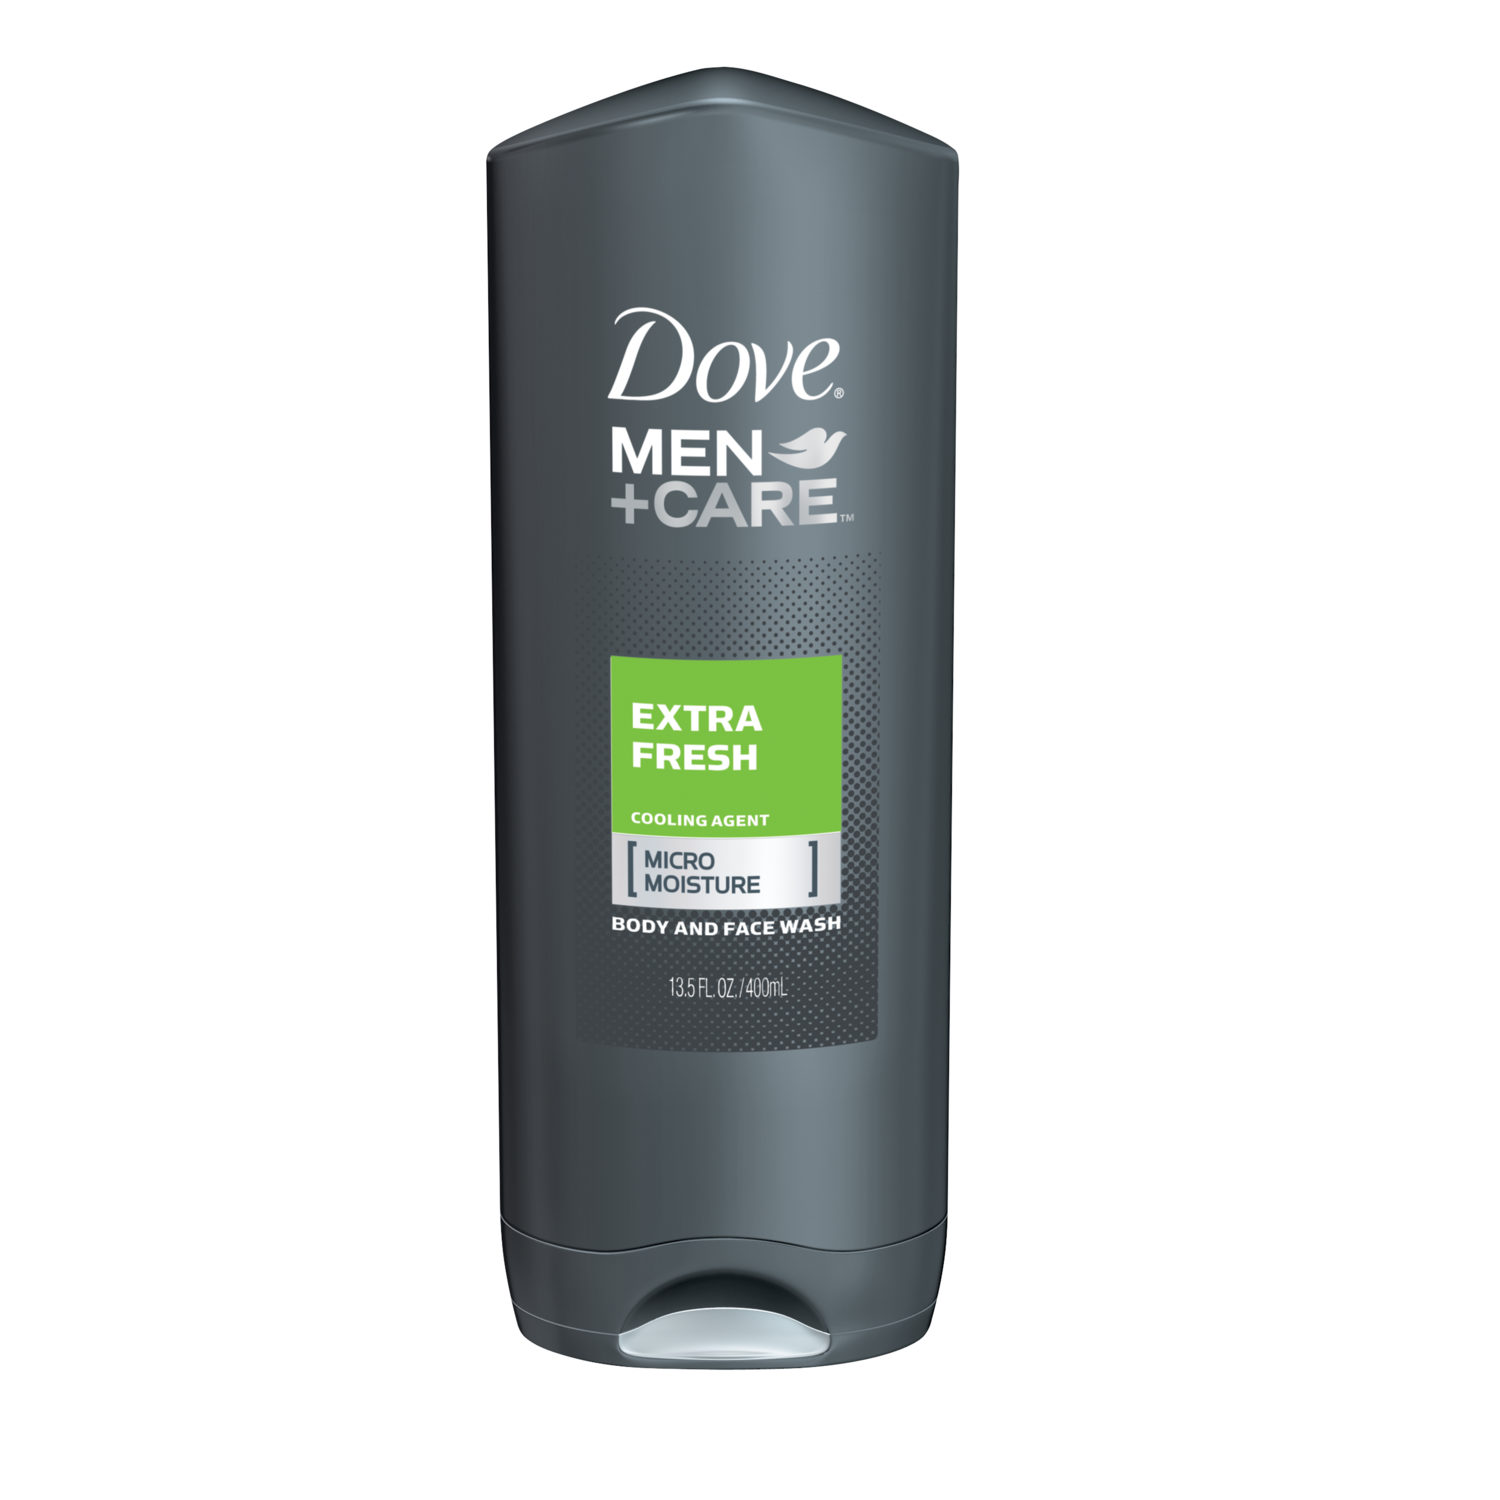 Dove Men Care Extra Fresh Body And Face Wash